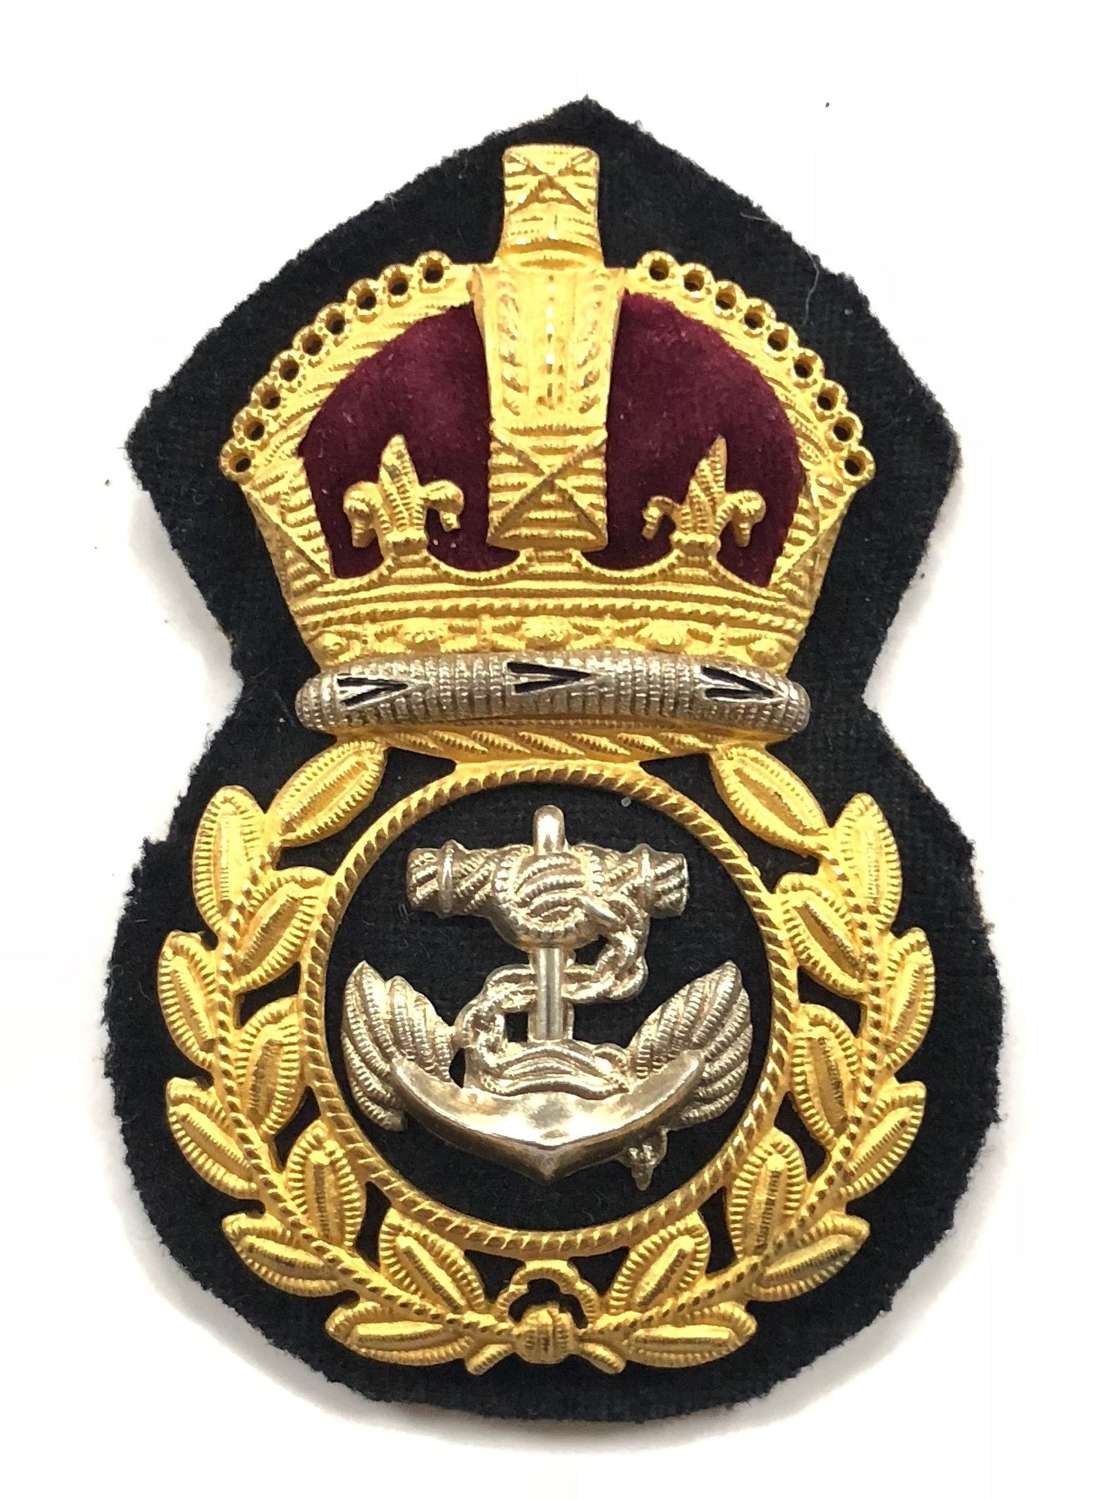 WW2 Royal Navy Chief Petty Officer's Economy Pattern Cap Badge.